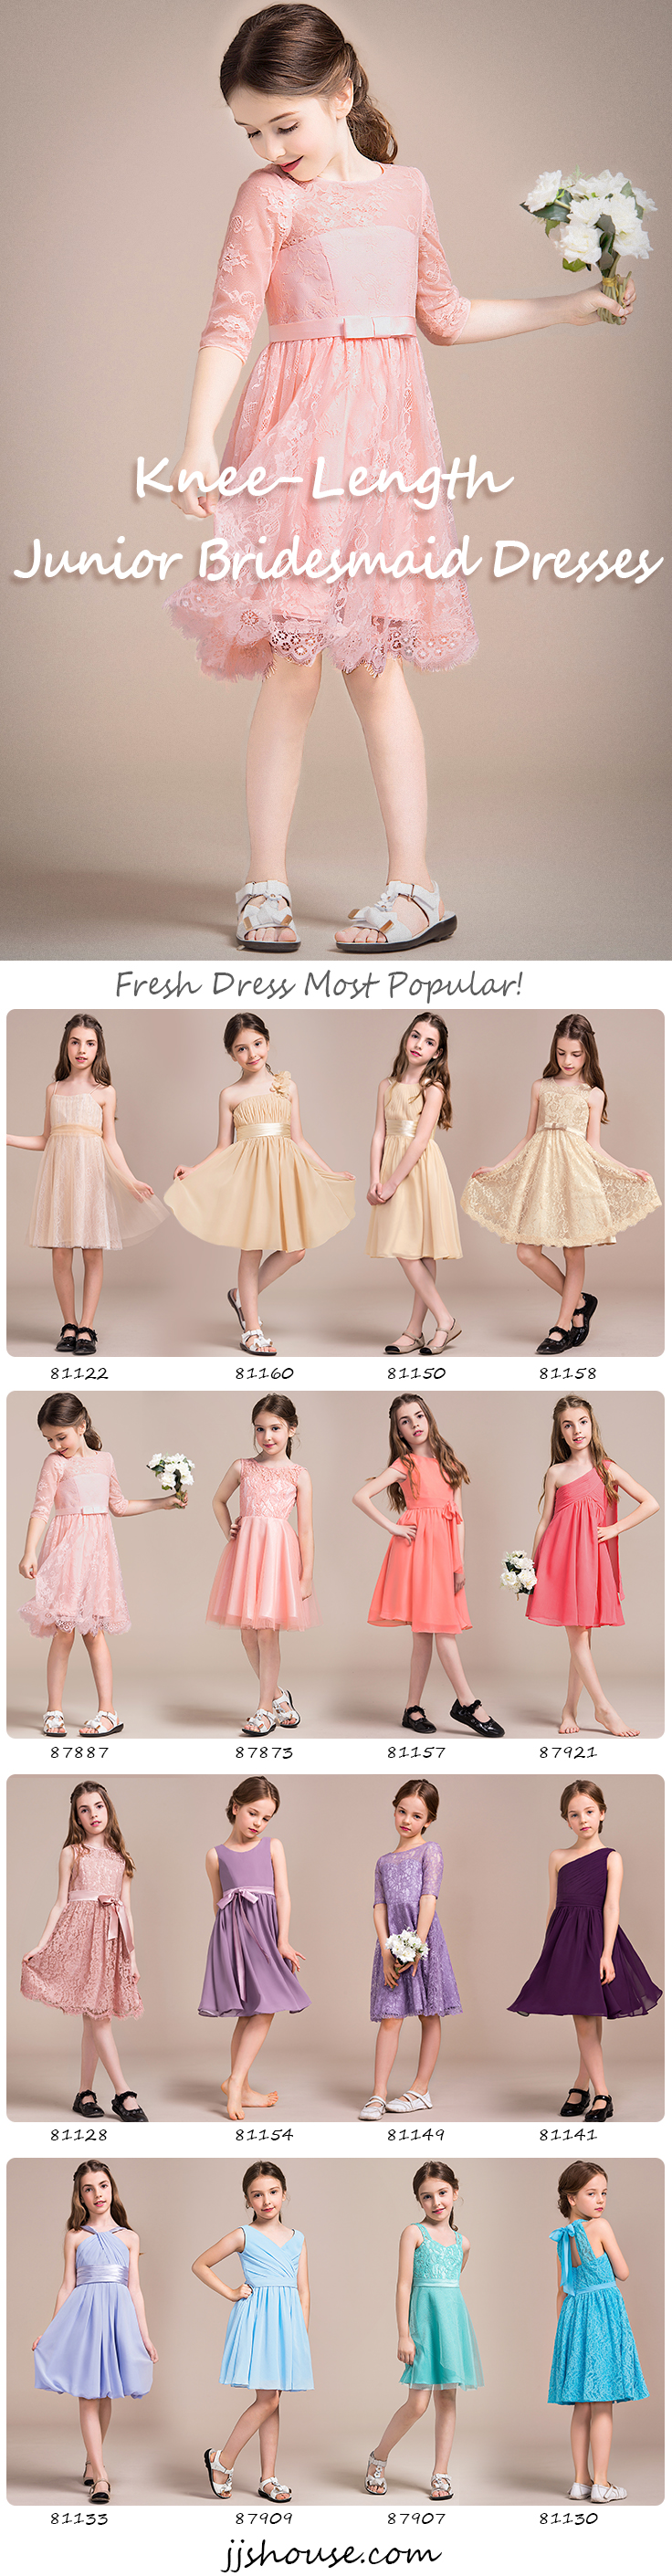 Knee-Length Junior Bridesmaid Dresses Fresh Dresses Most Popular ...